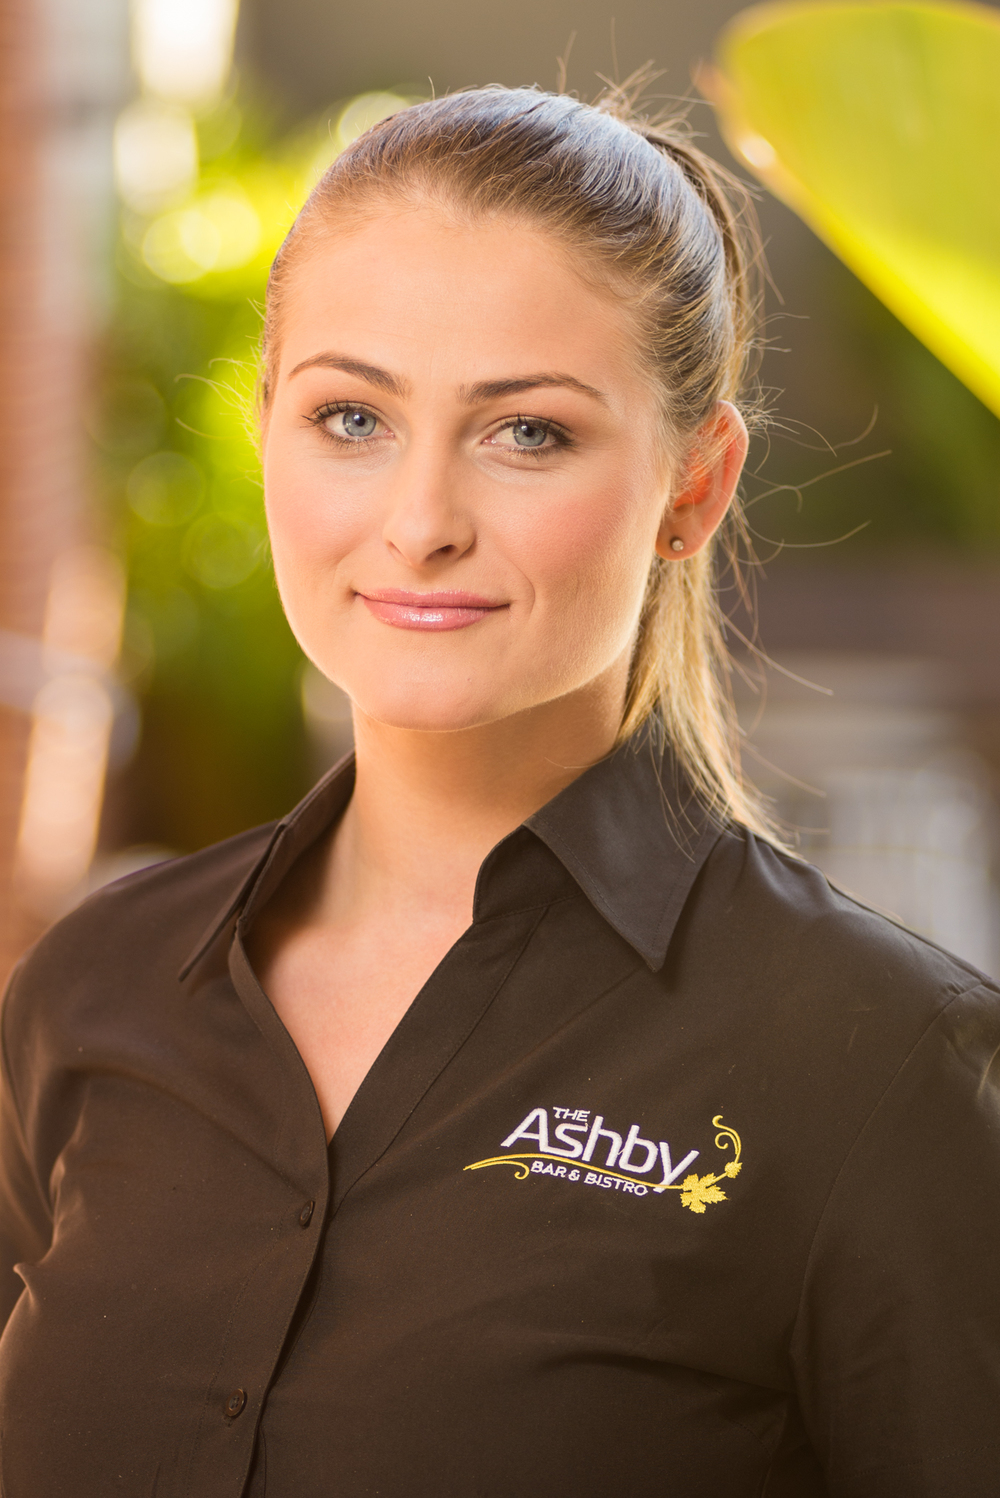 THE ASHBY_STAFF PORTRAITS_HR 15.05.29   -5.jpg